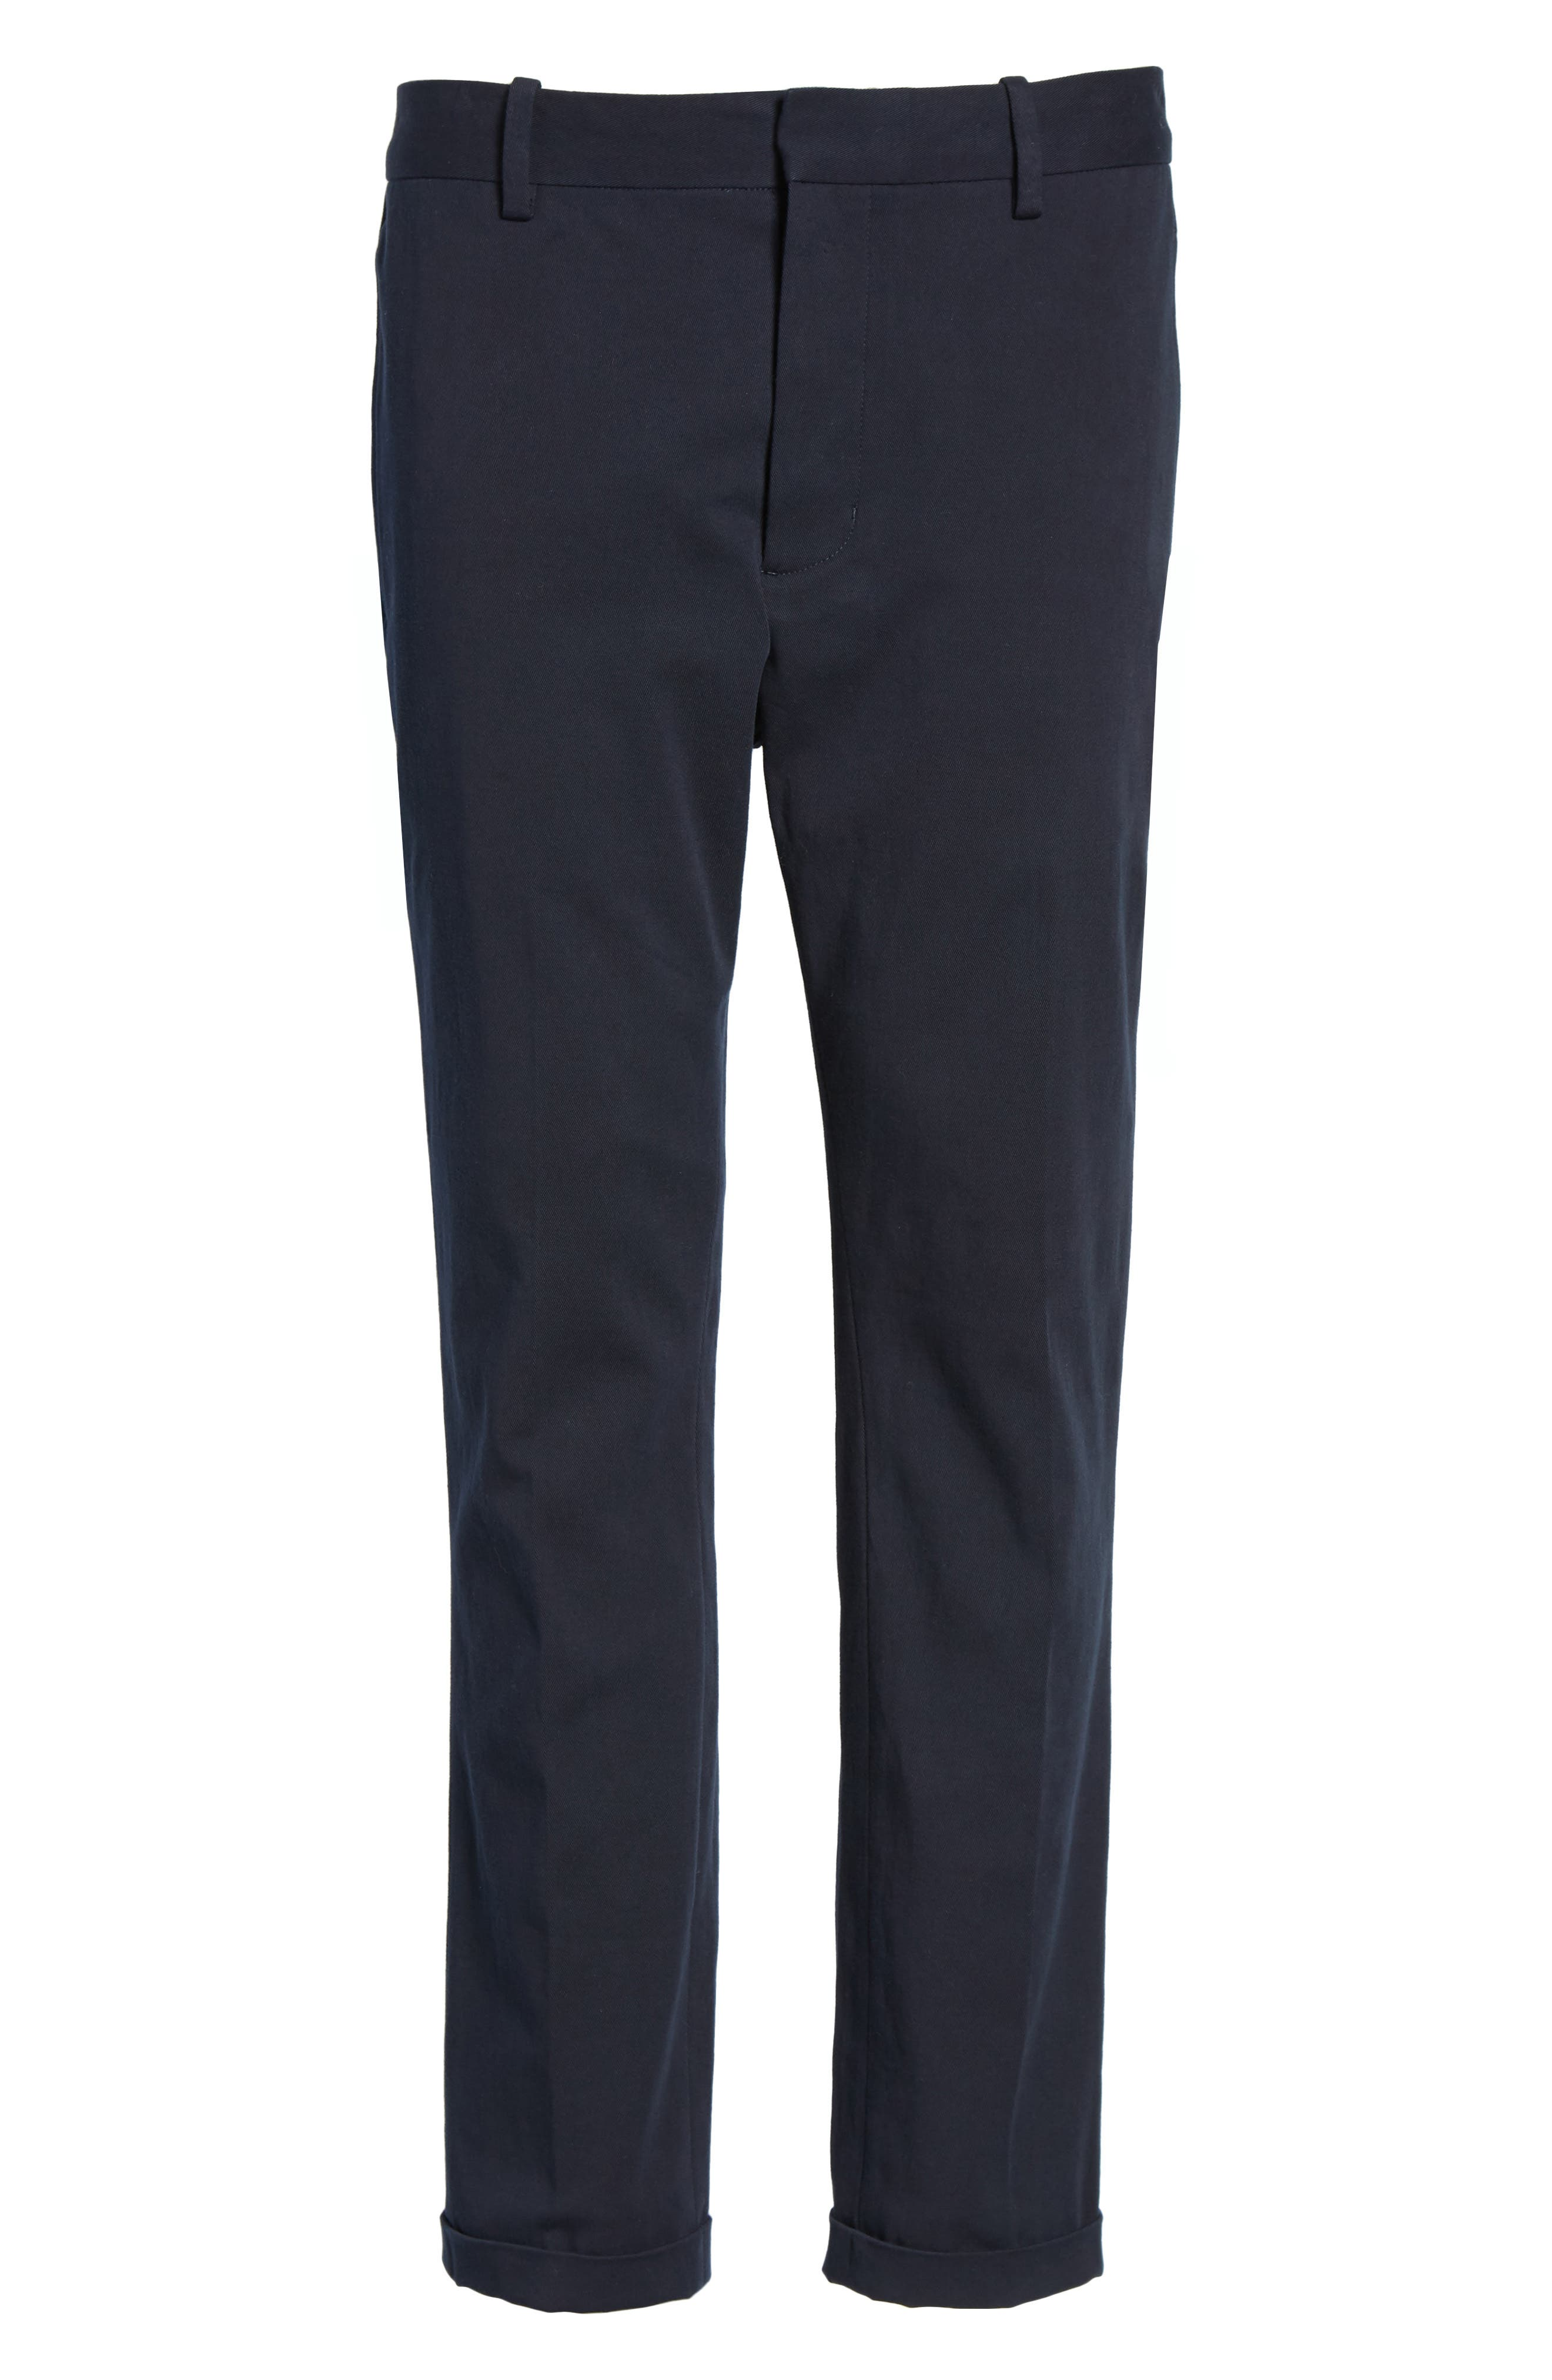 Cropped Slim Fit Trousers,                             Alternate thumbnail 5, color,                             Coastal